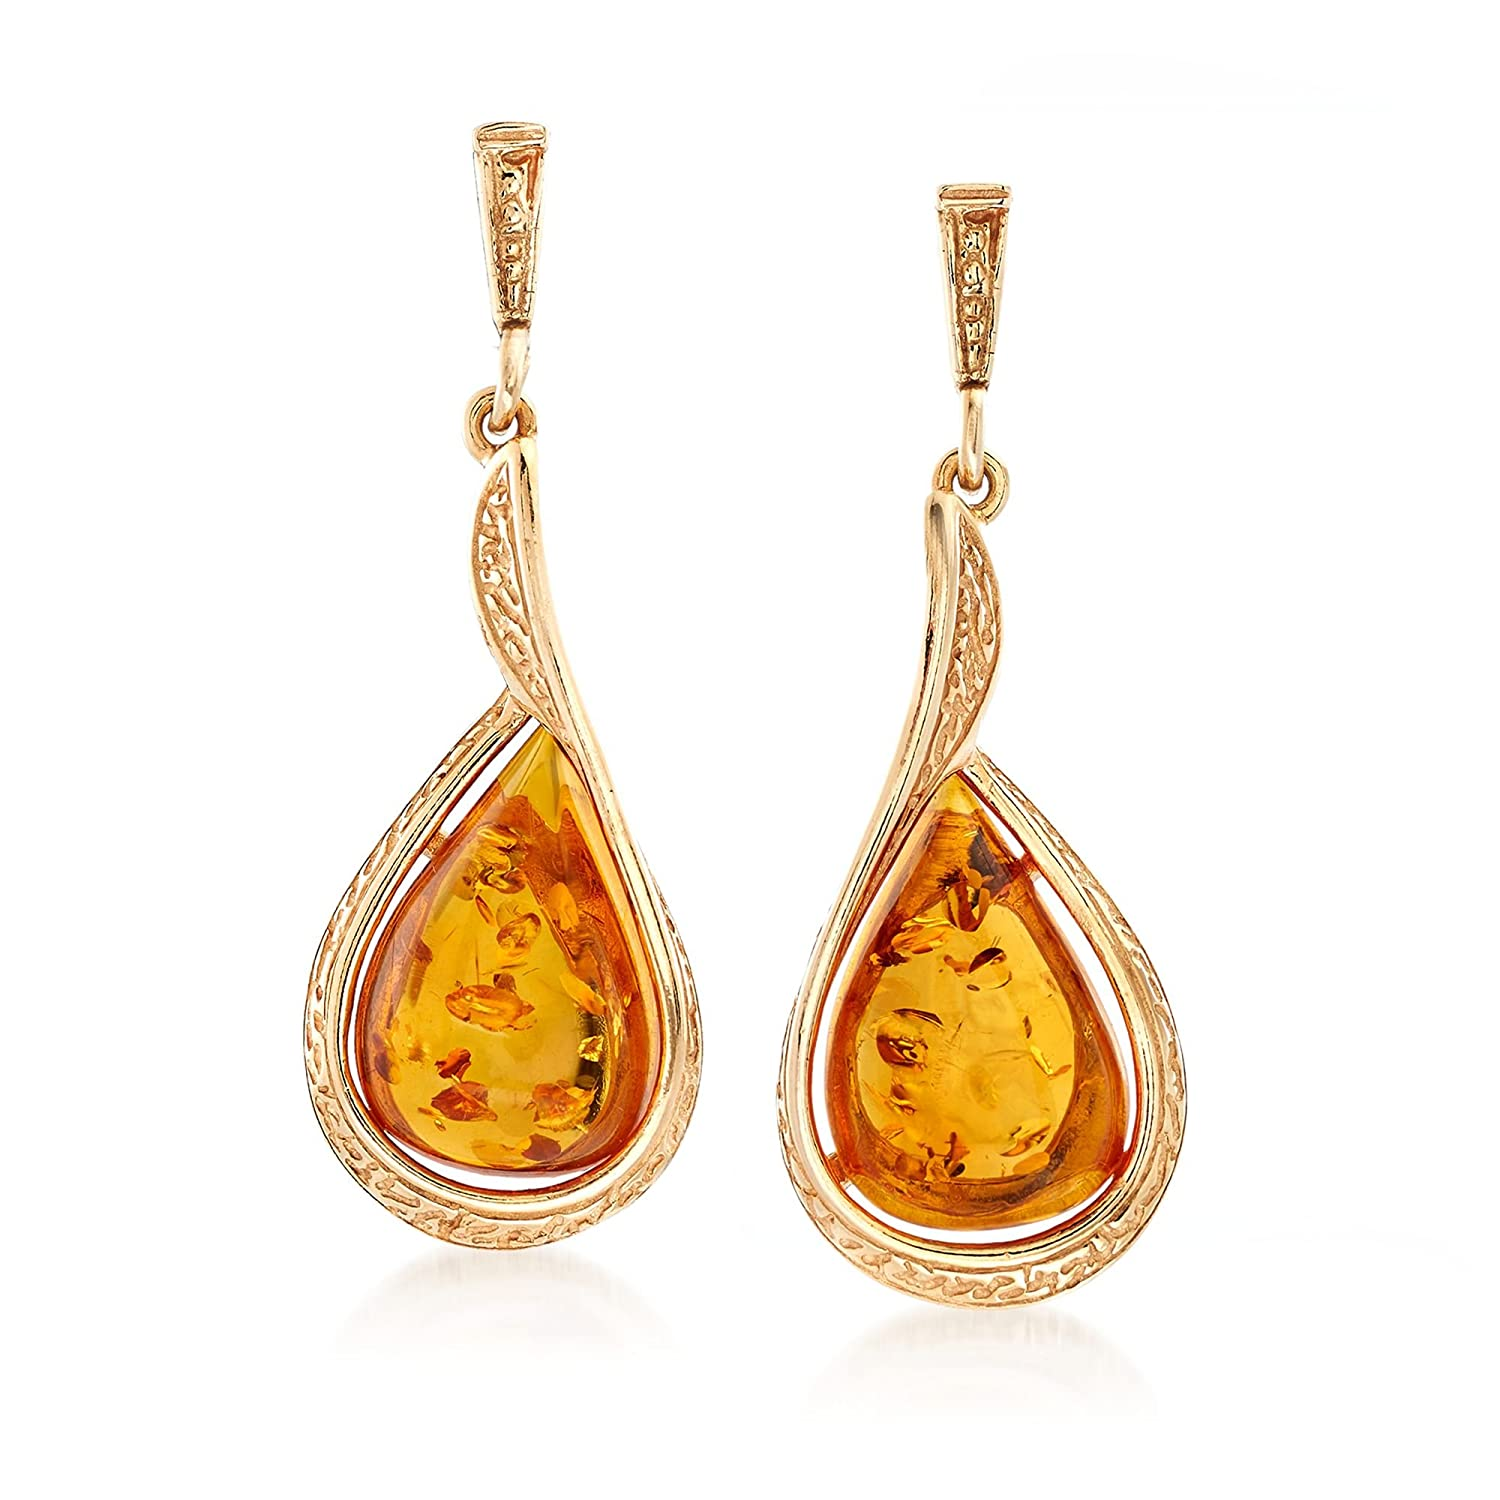 Ross-Simons Amber Textured Teardrop Earrings in 18kt Gold Over Sterling